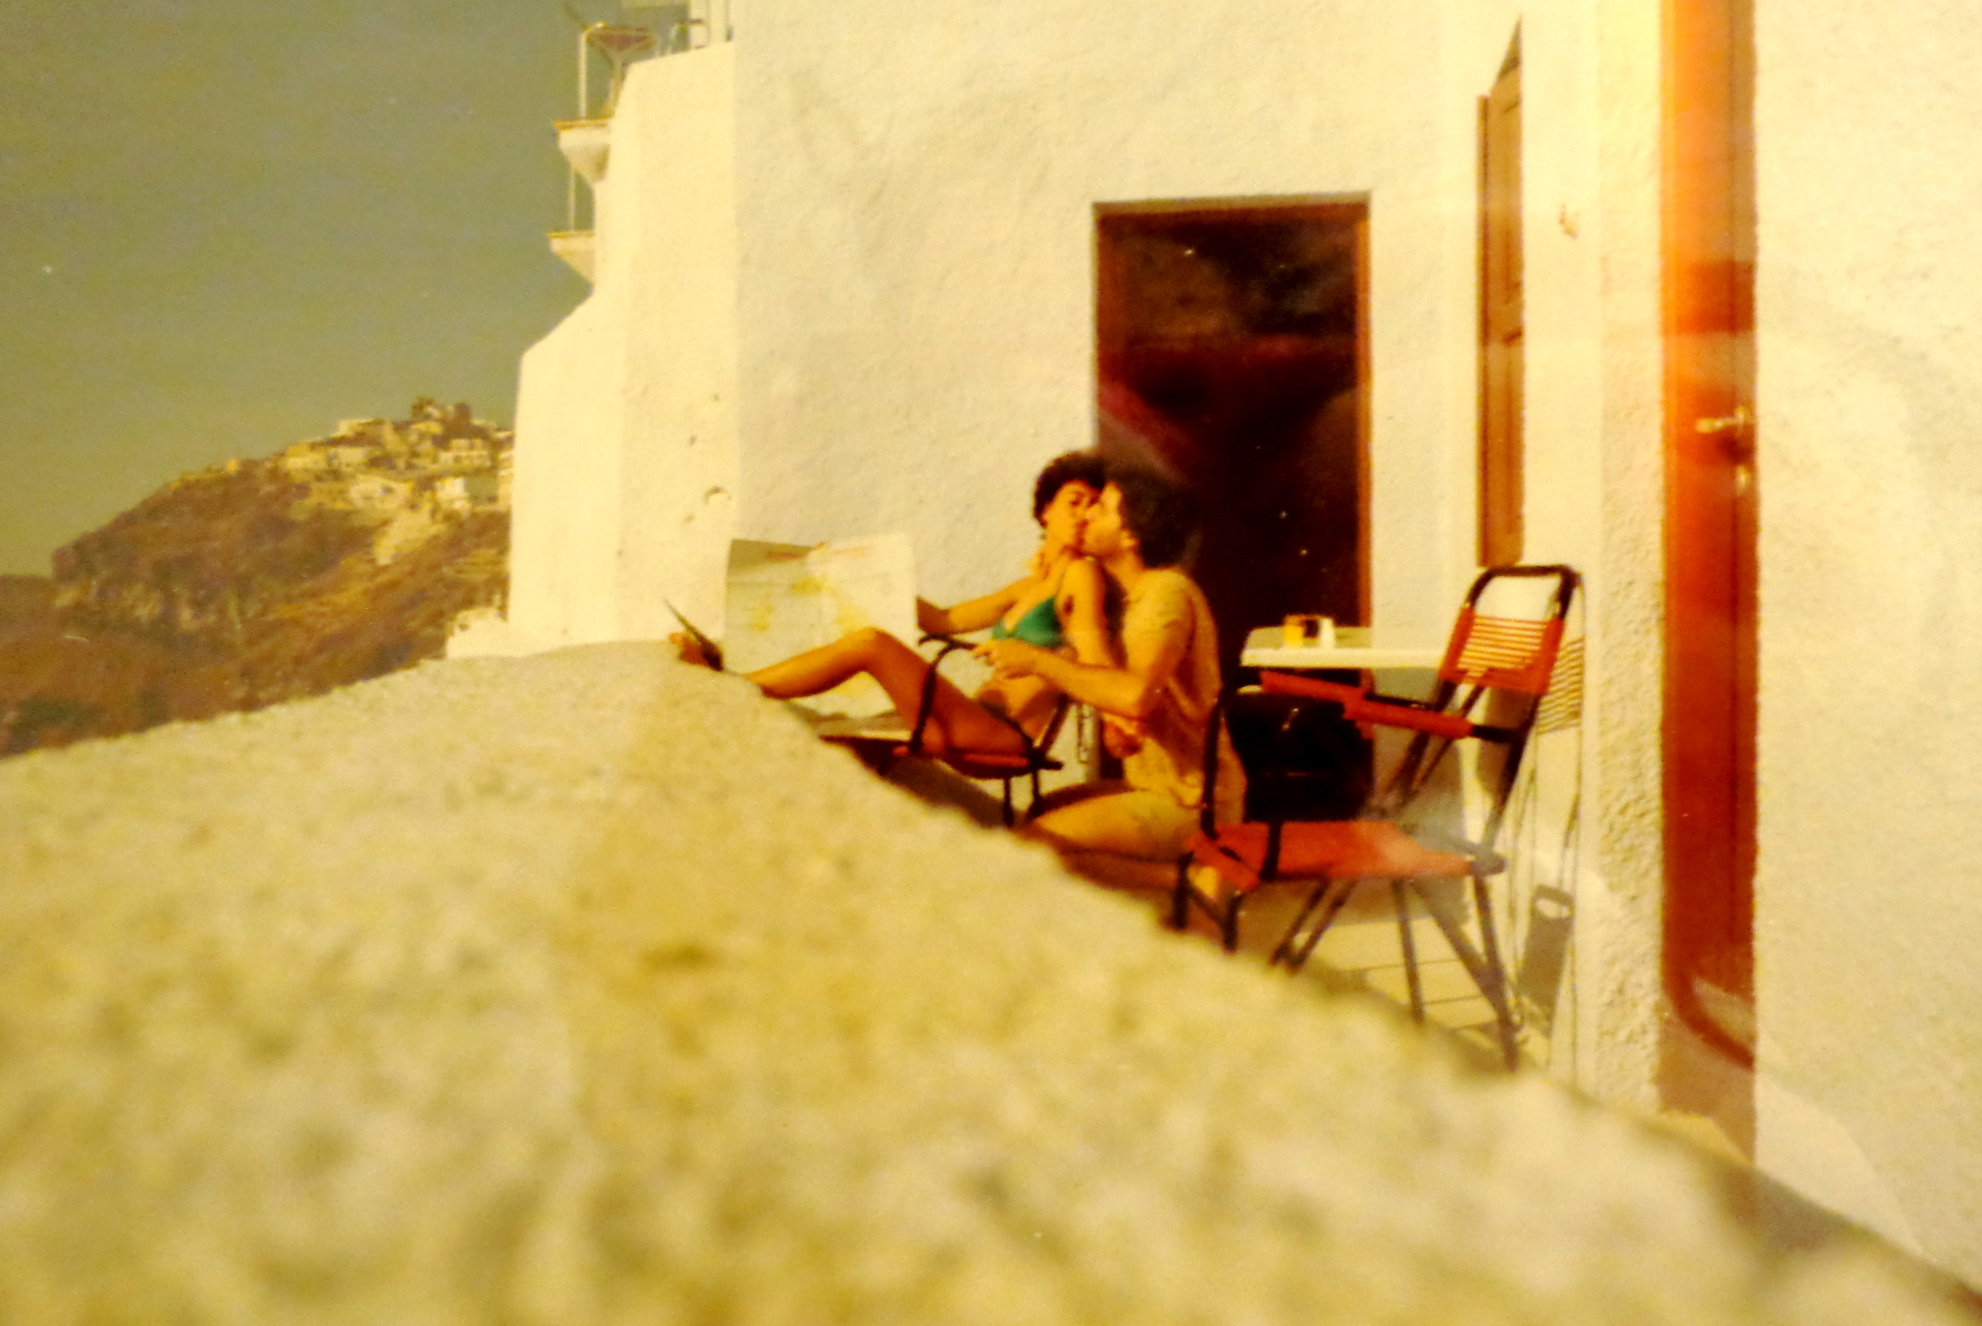 My parents kissing on the balcony during their honeymoon in Greece